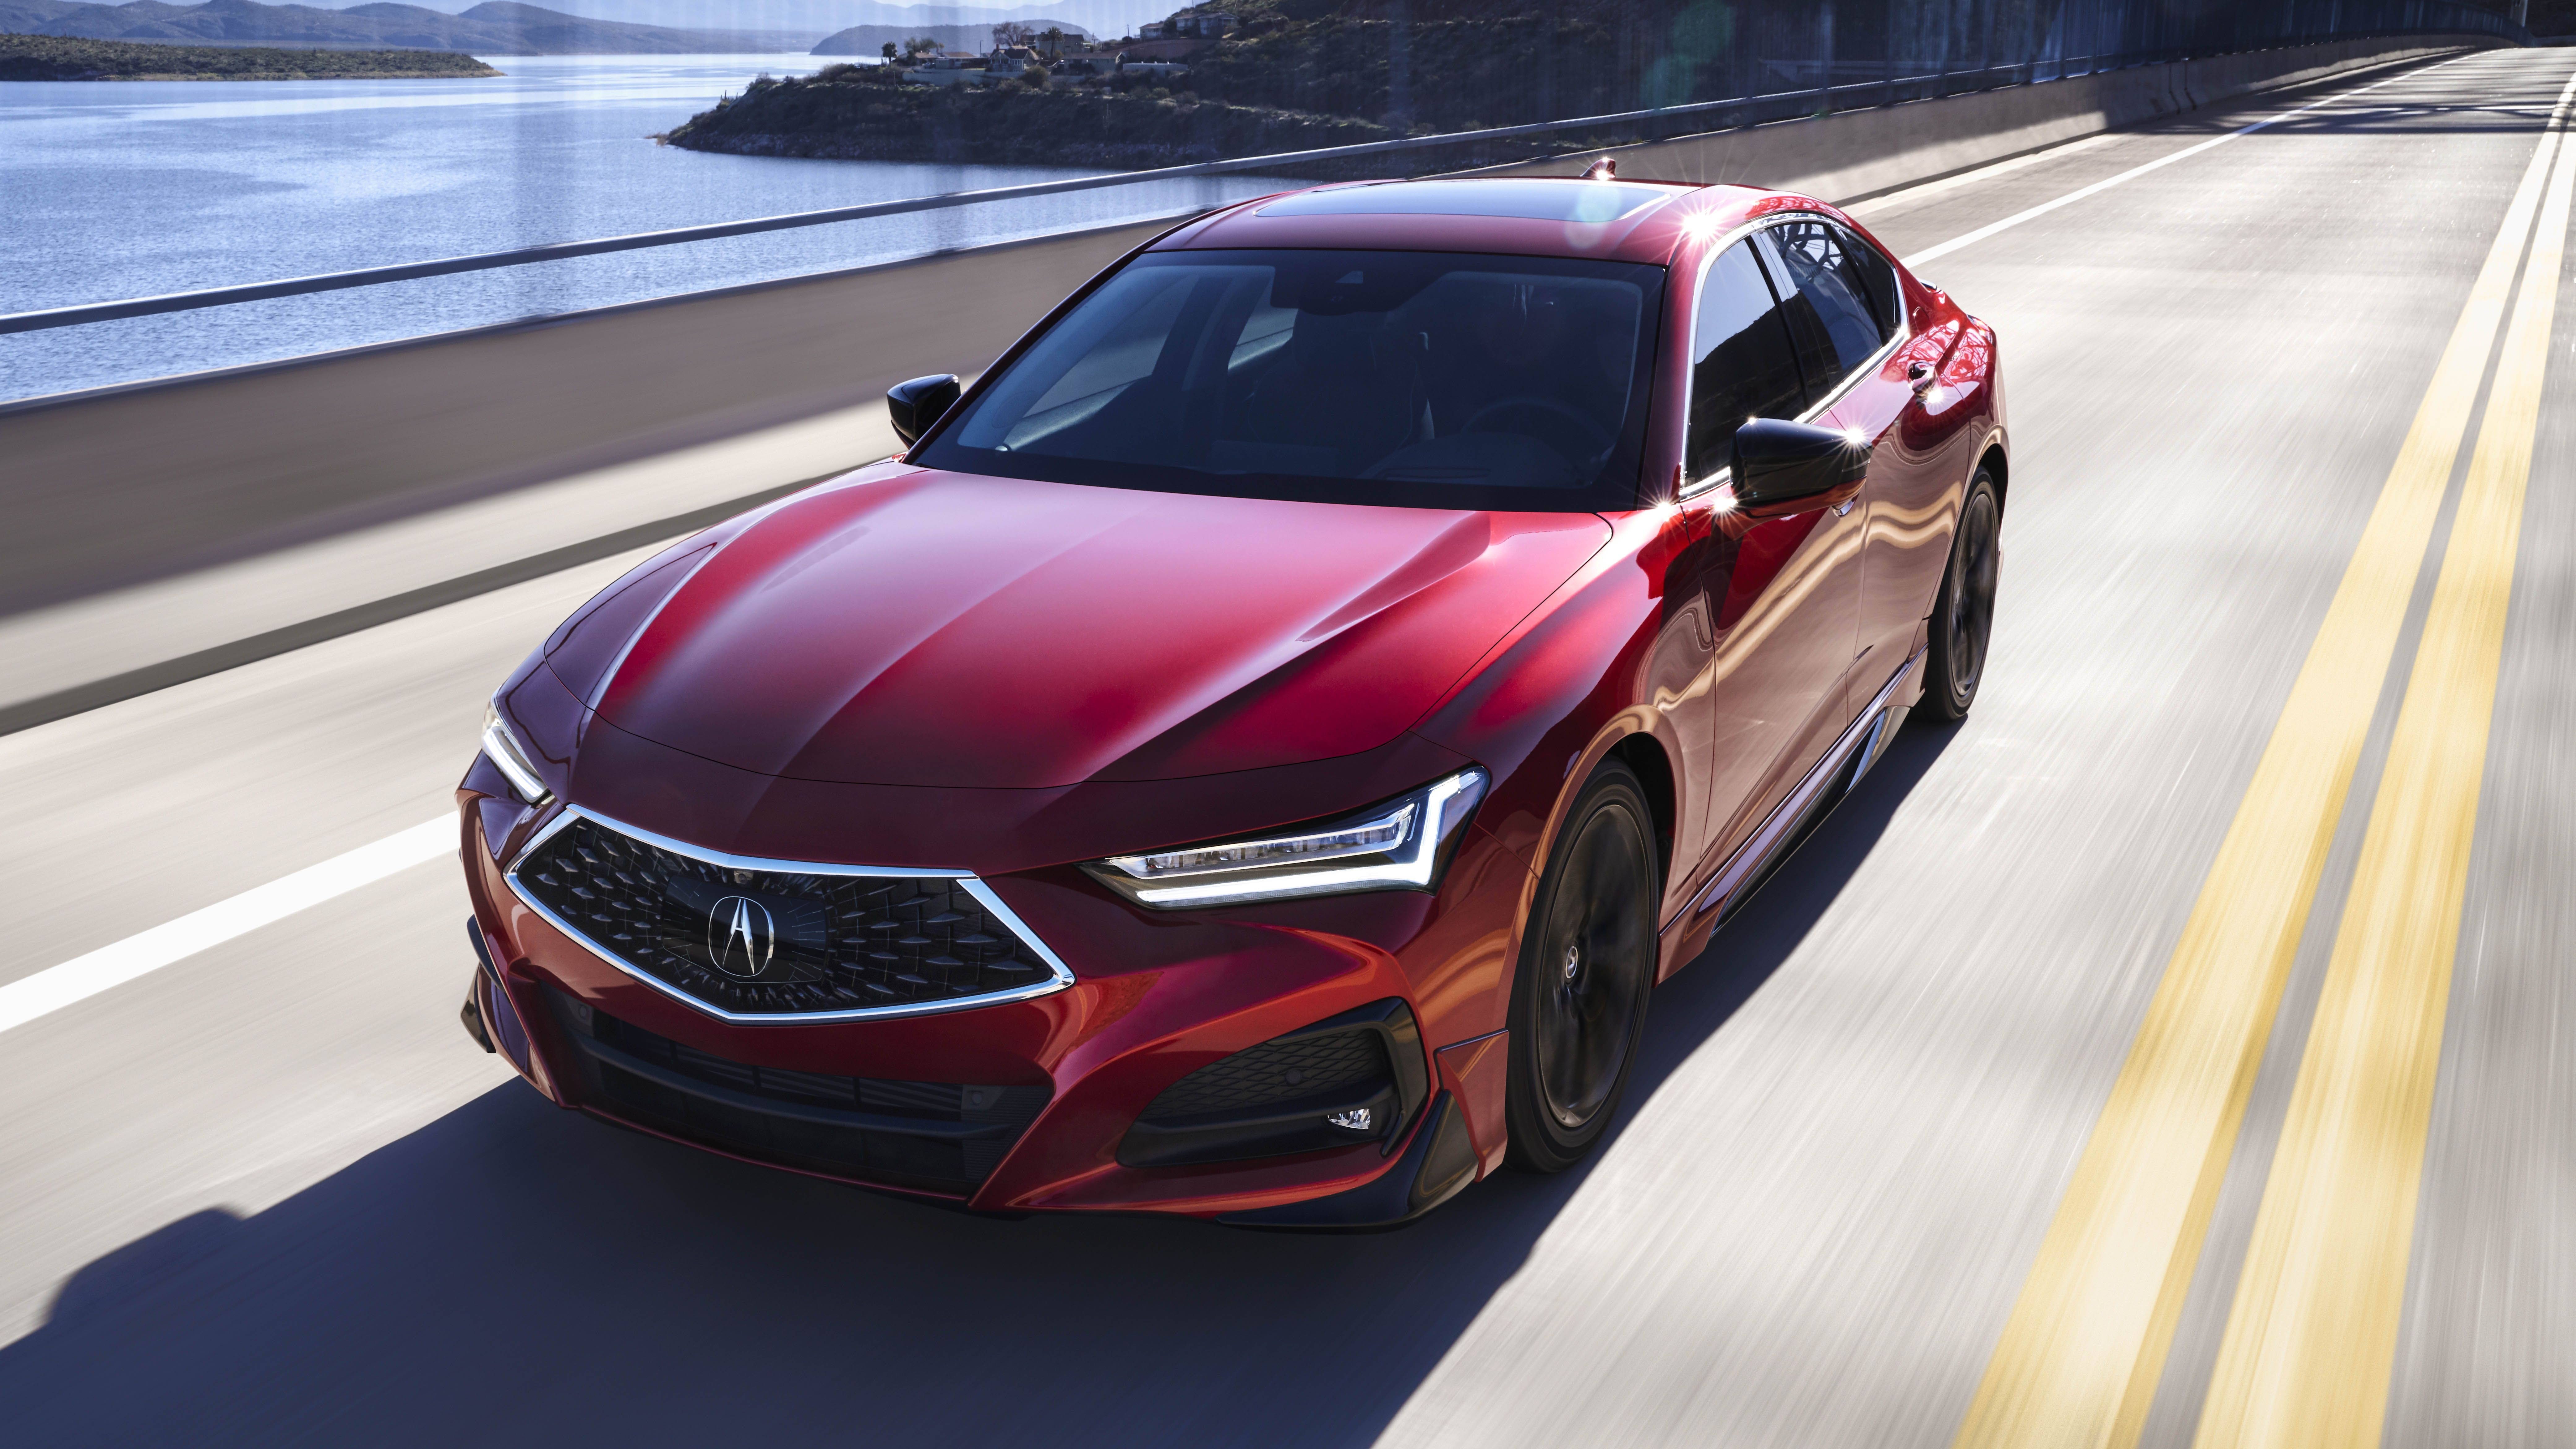 2021 Acura Tlx Revealed Here Are Details On Performance Tech Style Acura Tlx Sports Sedan Acura